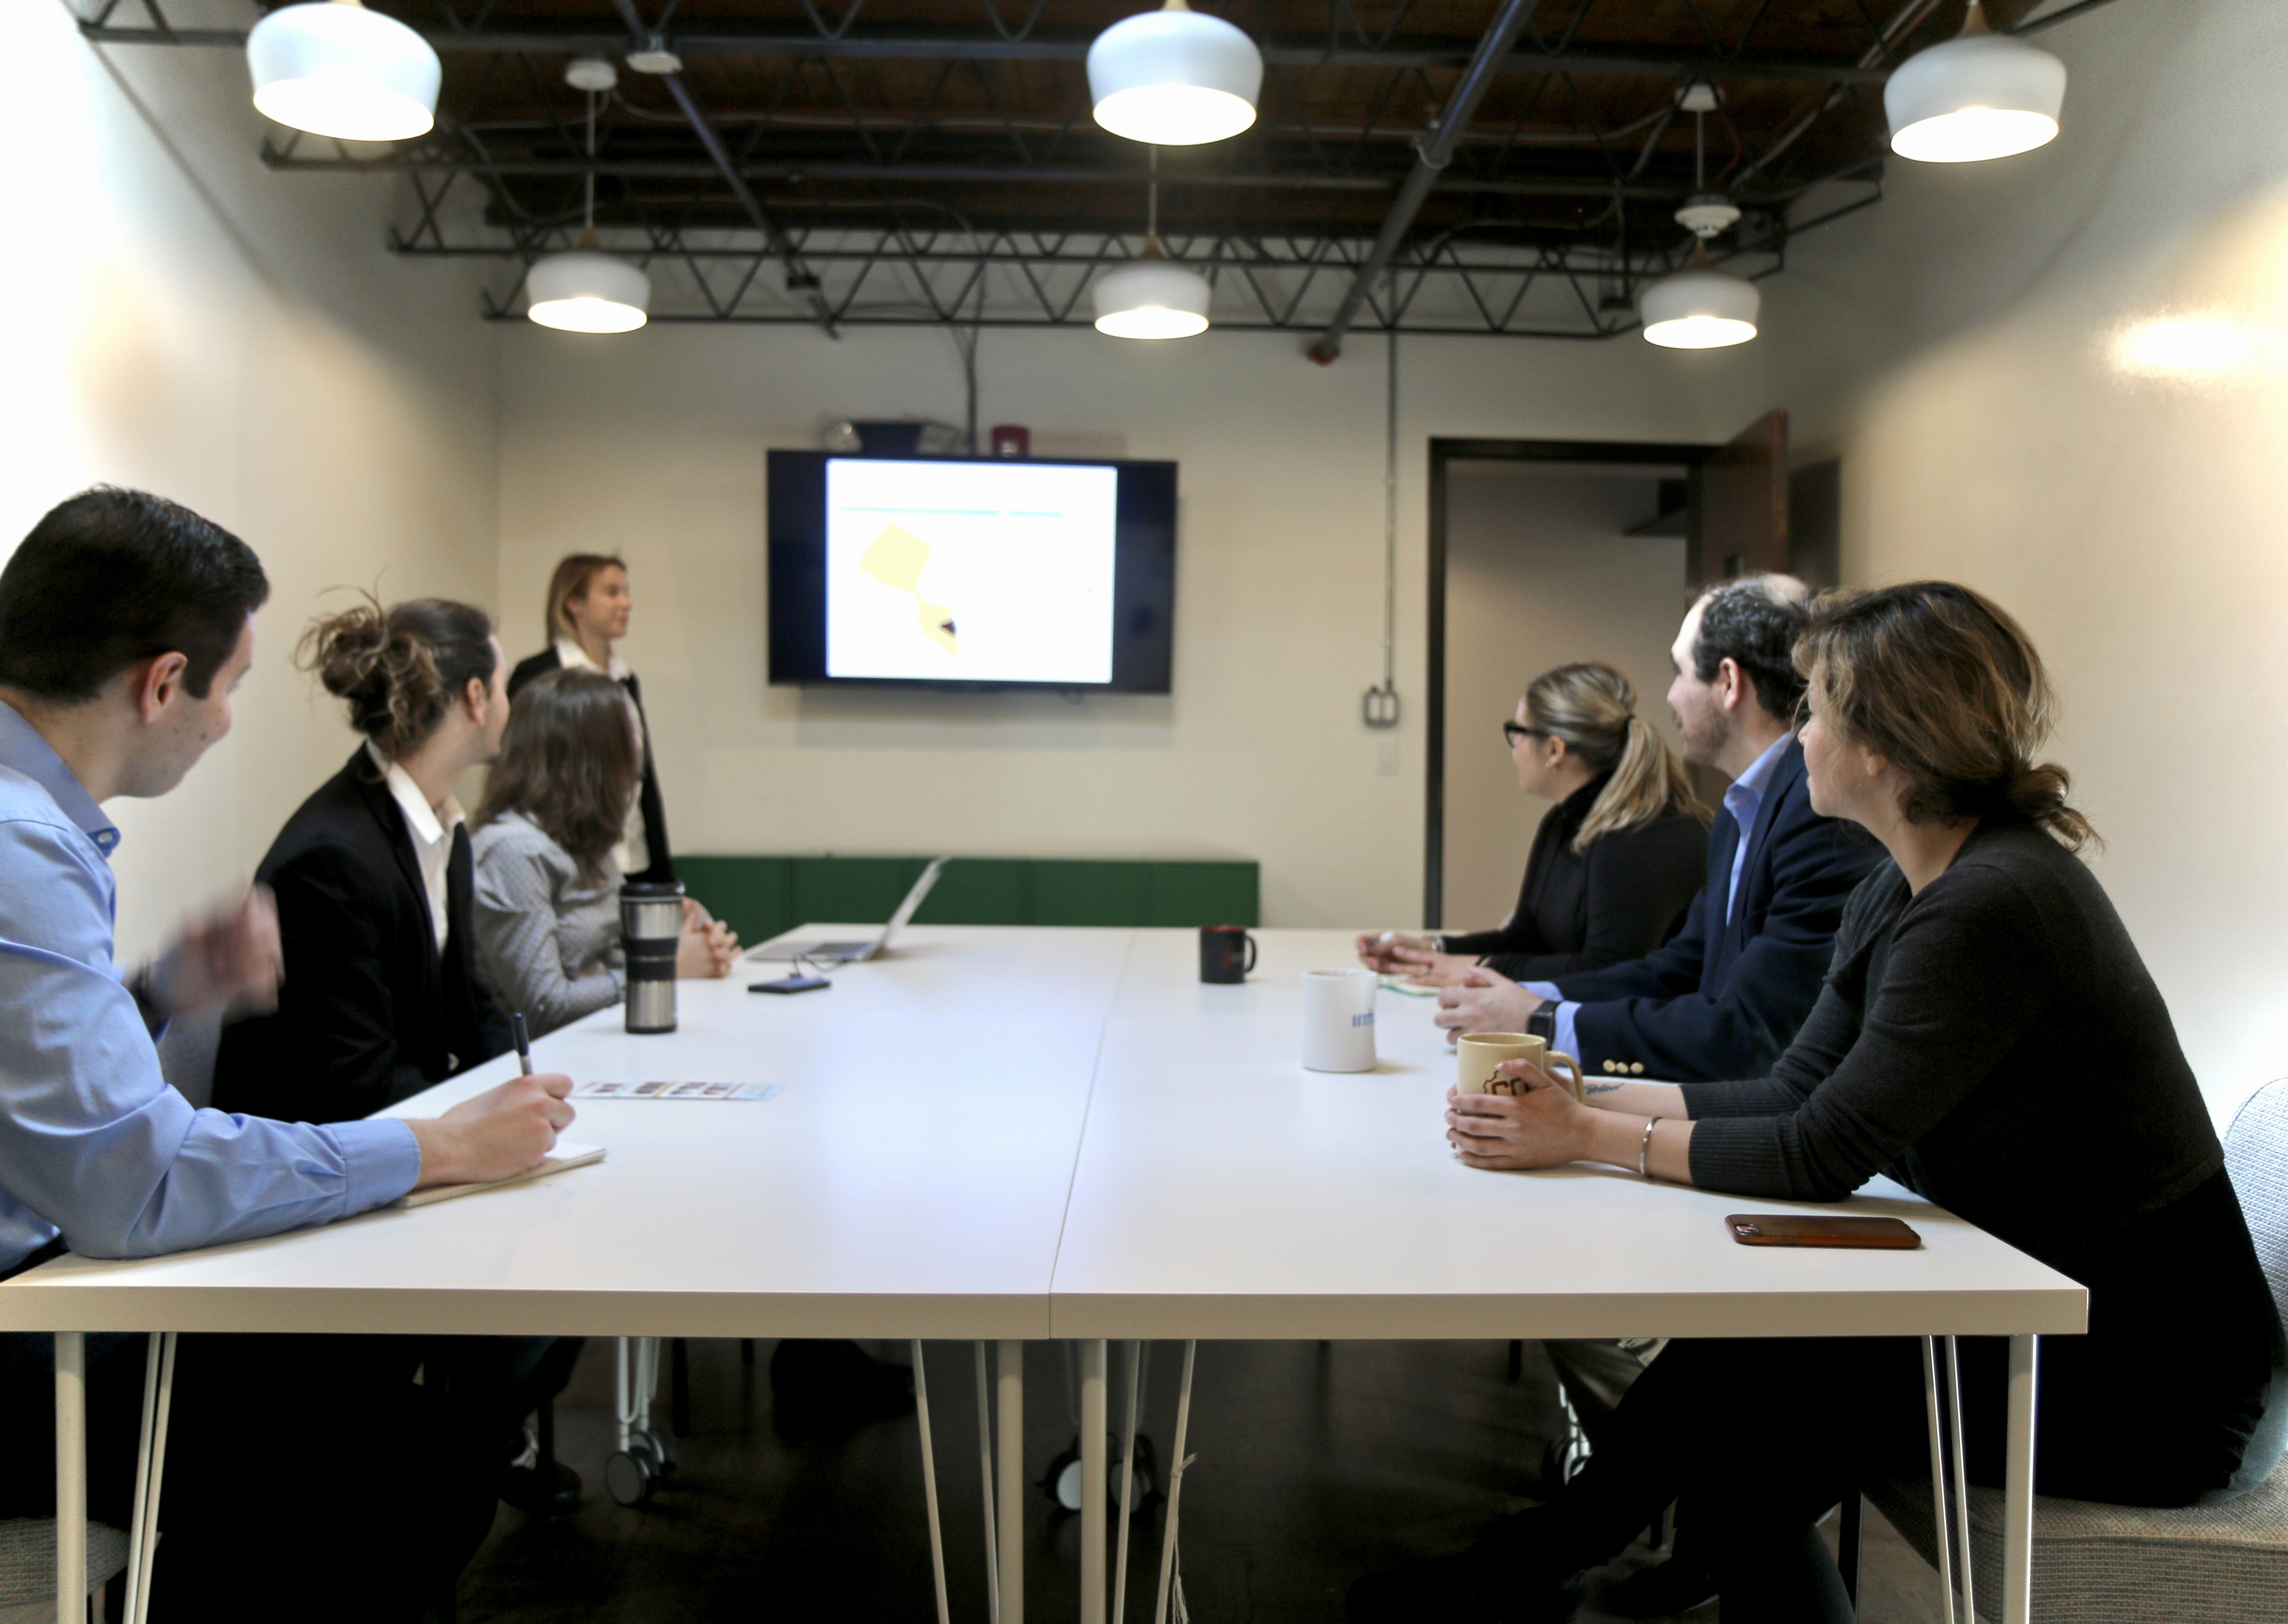 At Meeting or In Meeting Best Of Meeting and Conference Room Space In Downtown asbury Park Nj